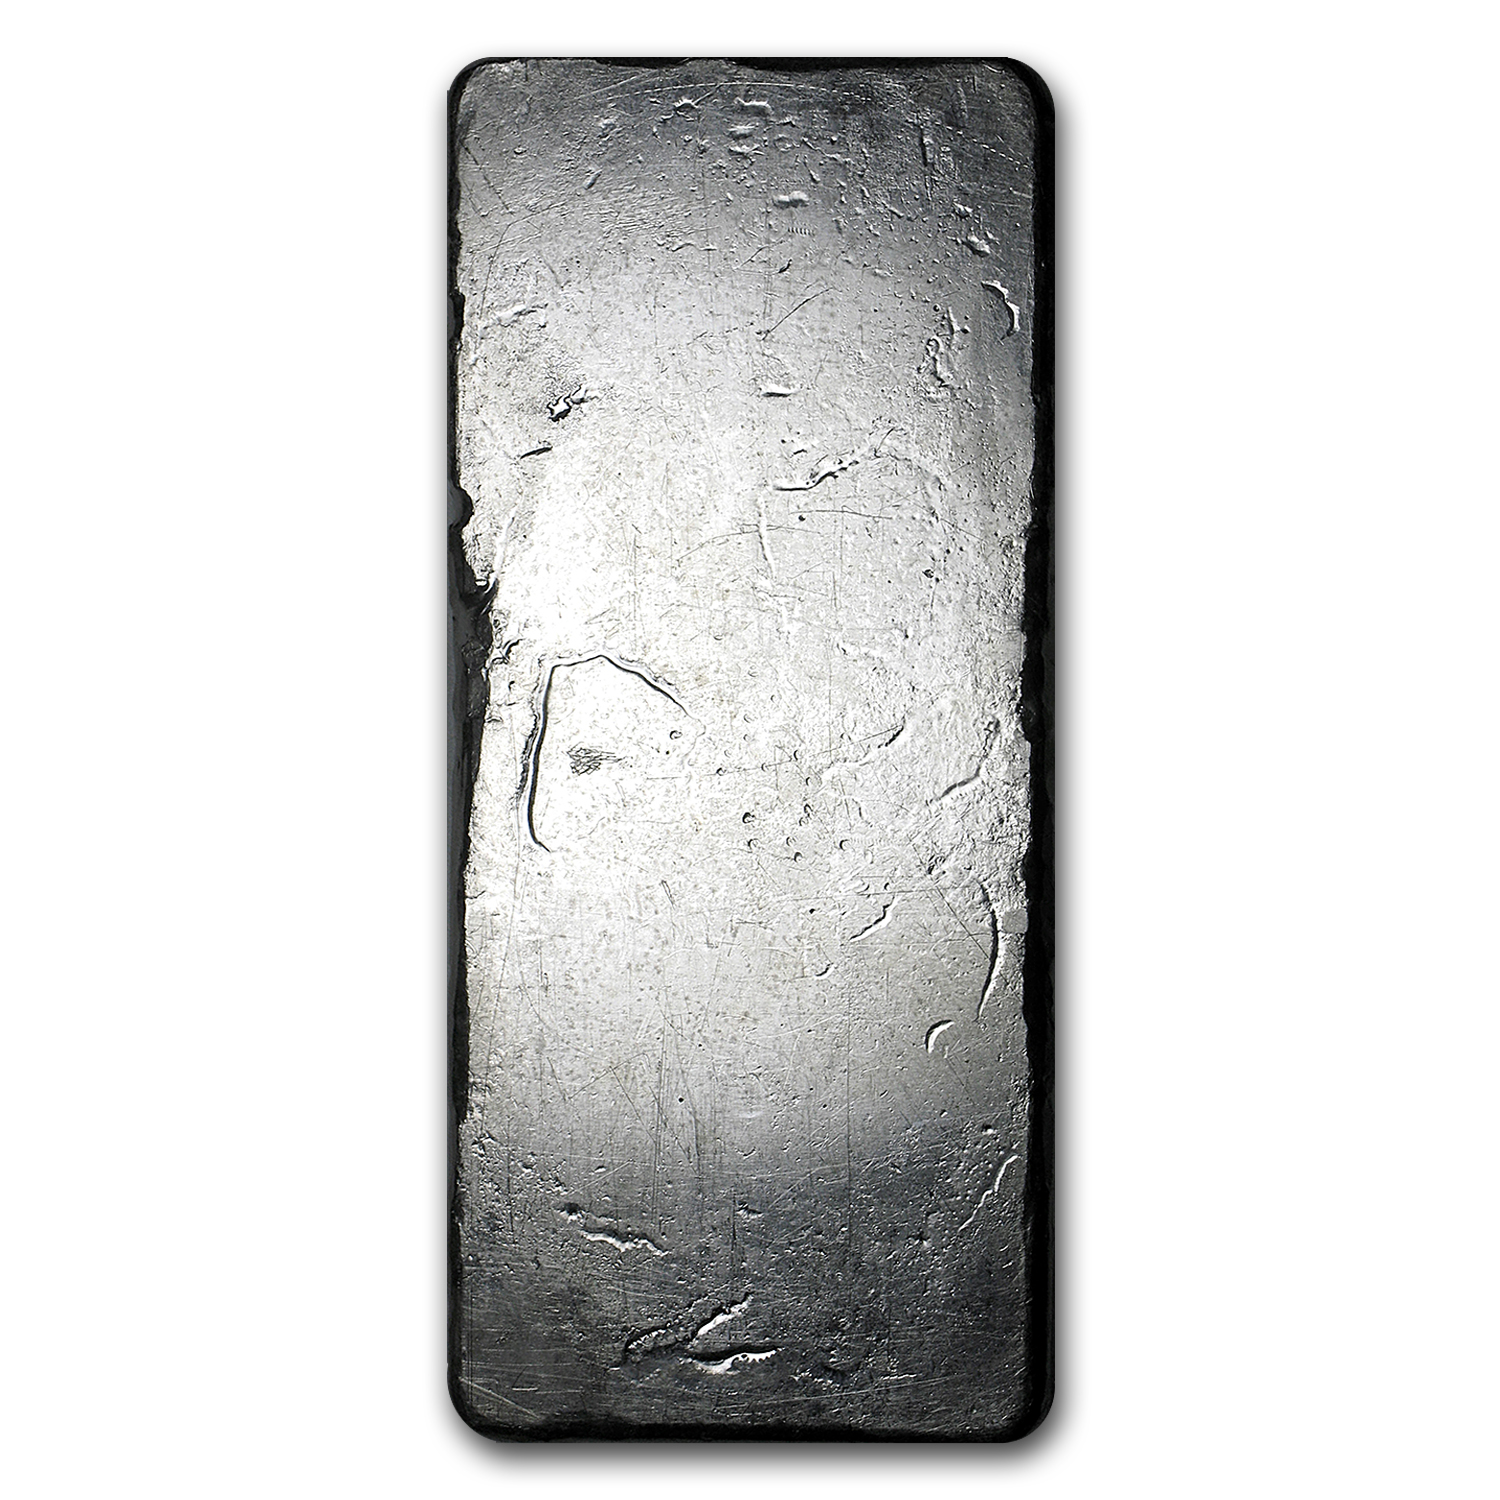 1 kilo Silver Bar - Swiss Bank Corporation